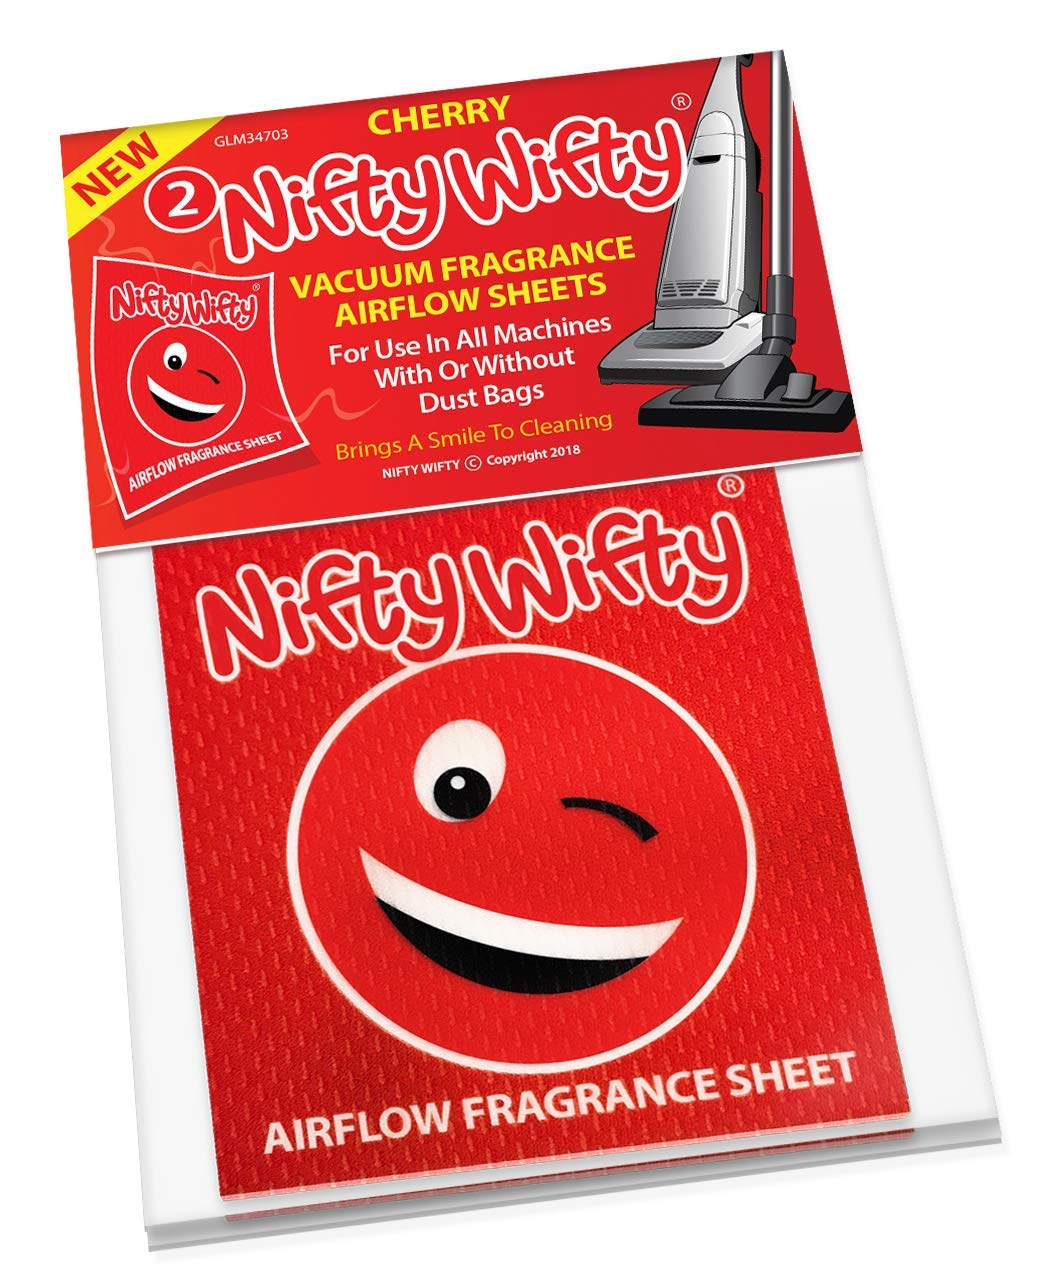 Description of Nifty Wifty Cherry Vacuum Airflow Freshener sheet